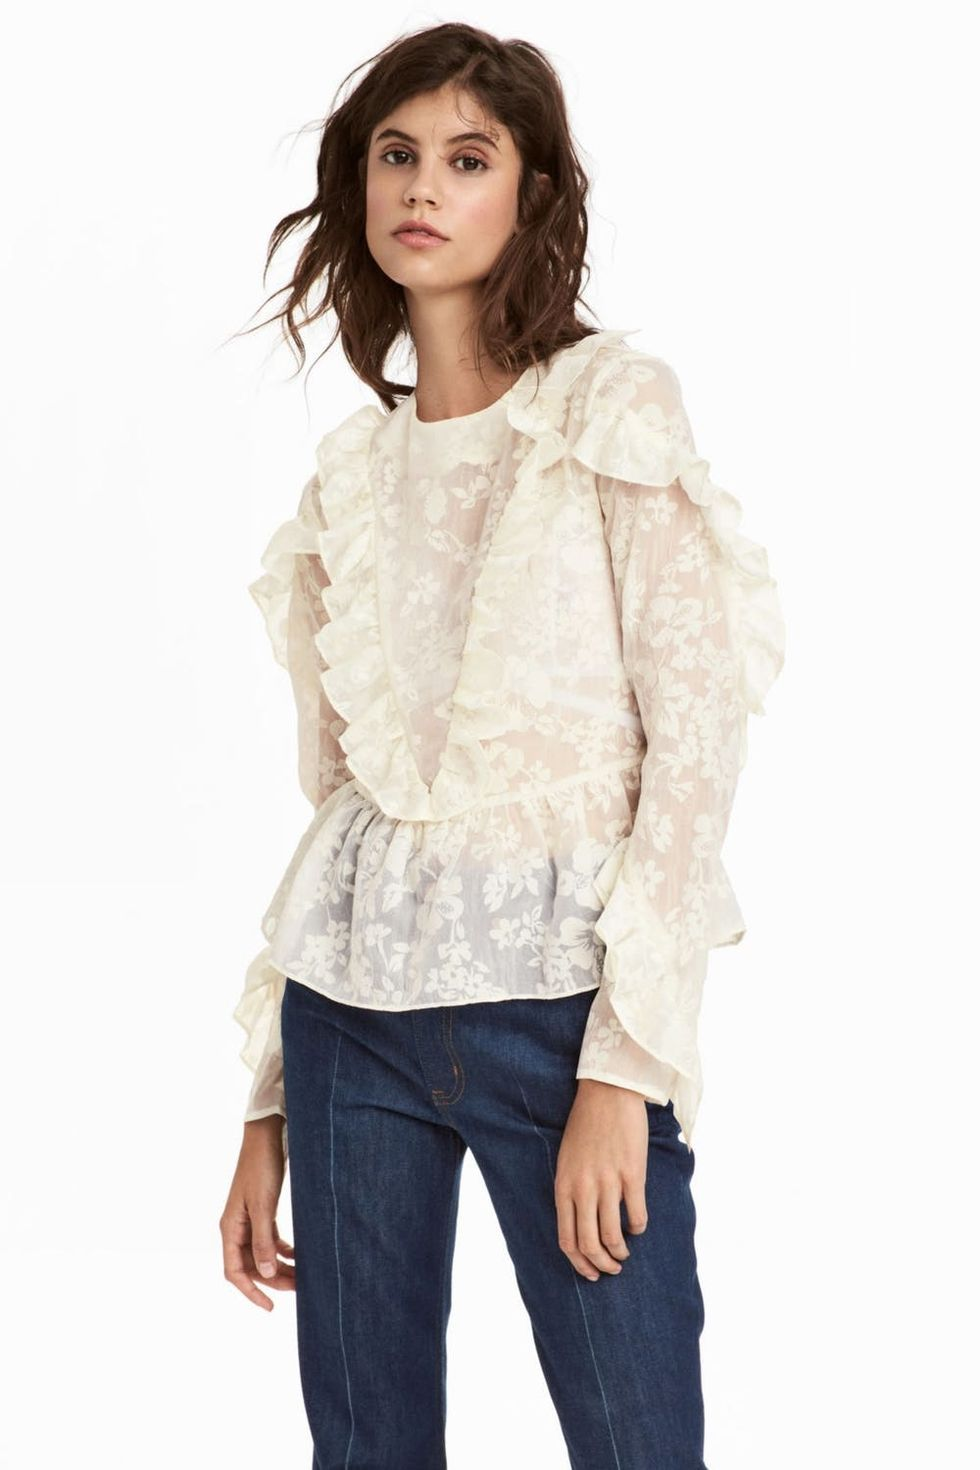 Fyi The Seinfeld Puffy Shirt Is Making A Comeback This Season Brit Co